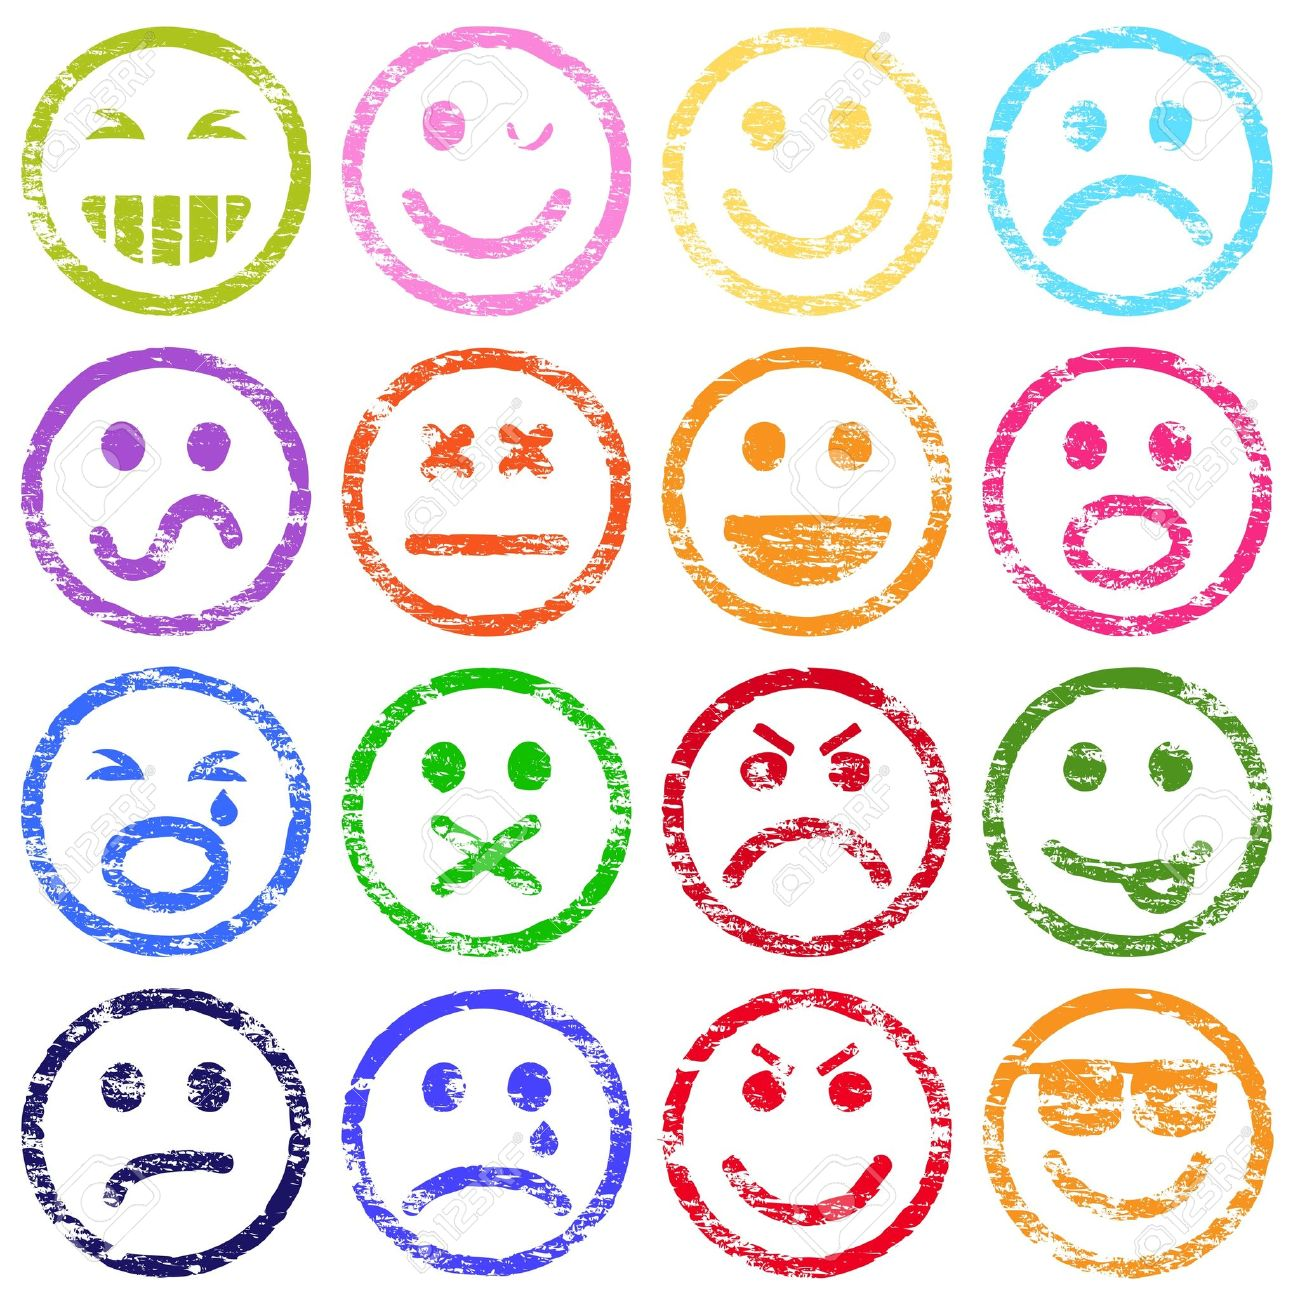 Colorful smiley face rubber stamp illustrations - 18142309